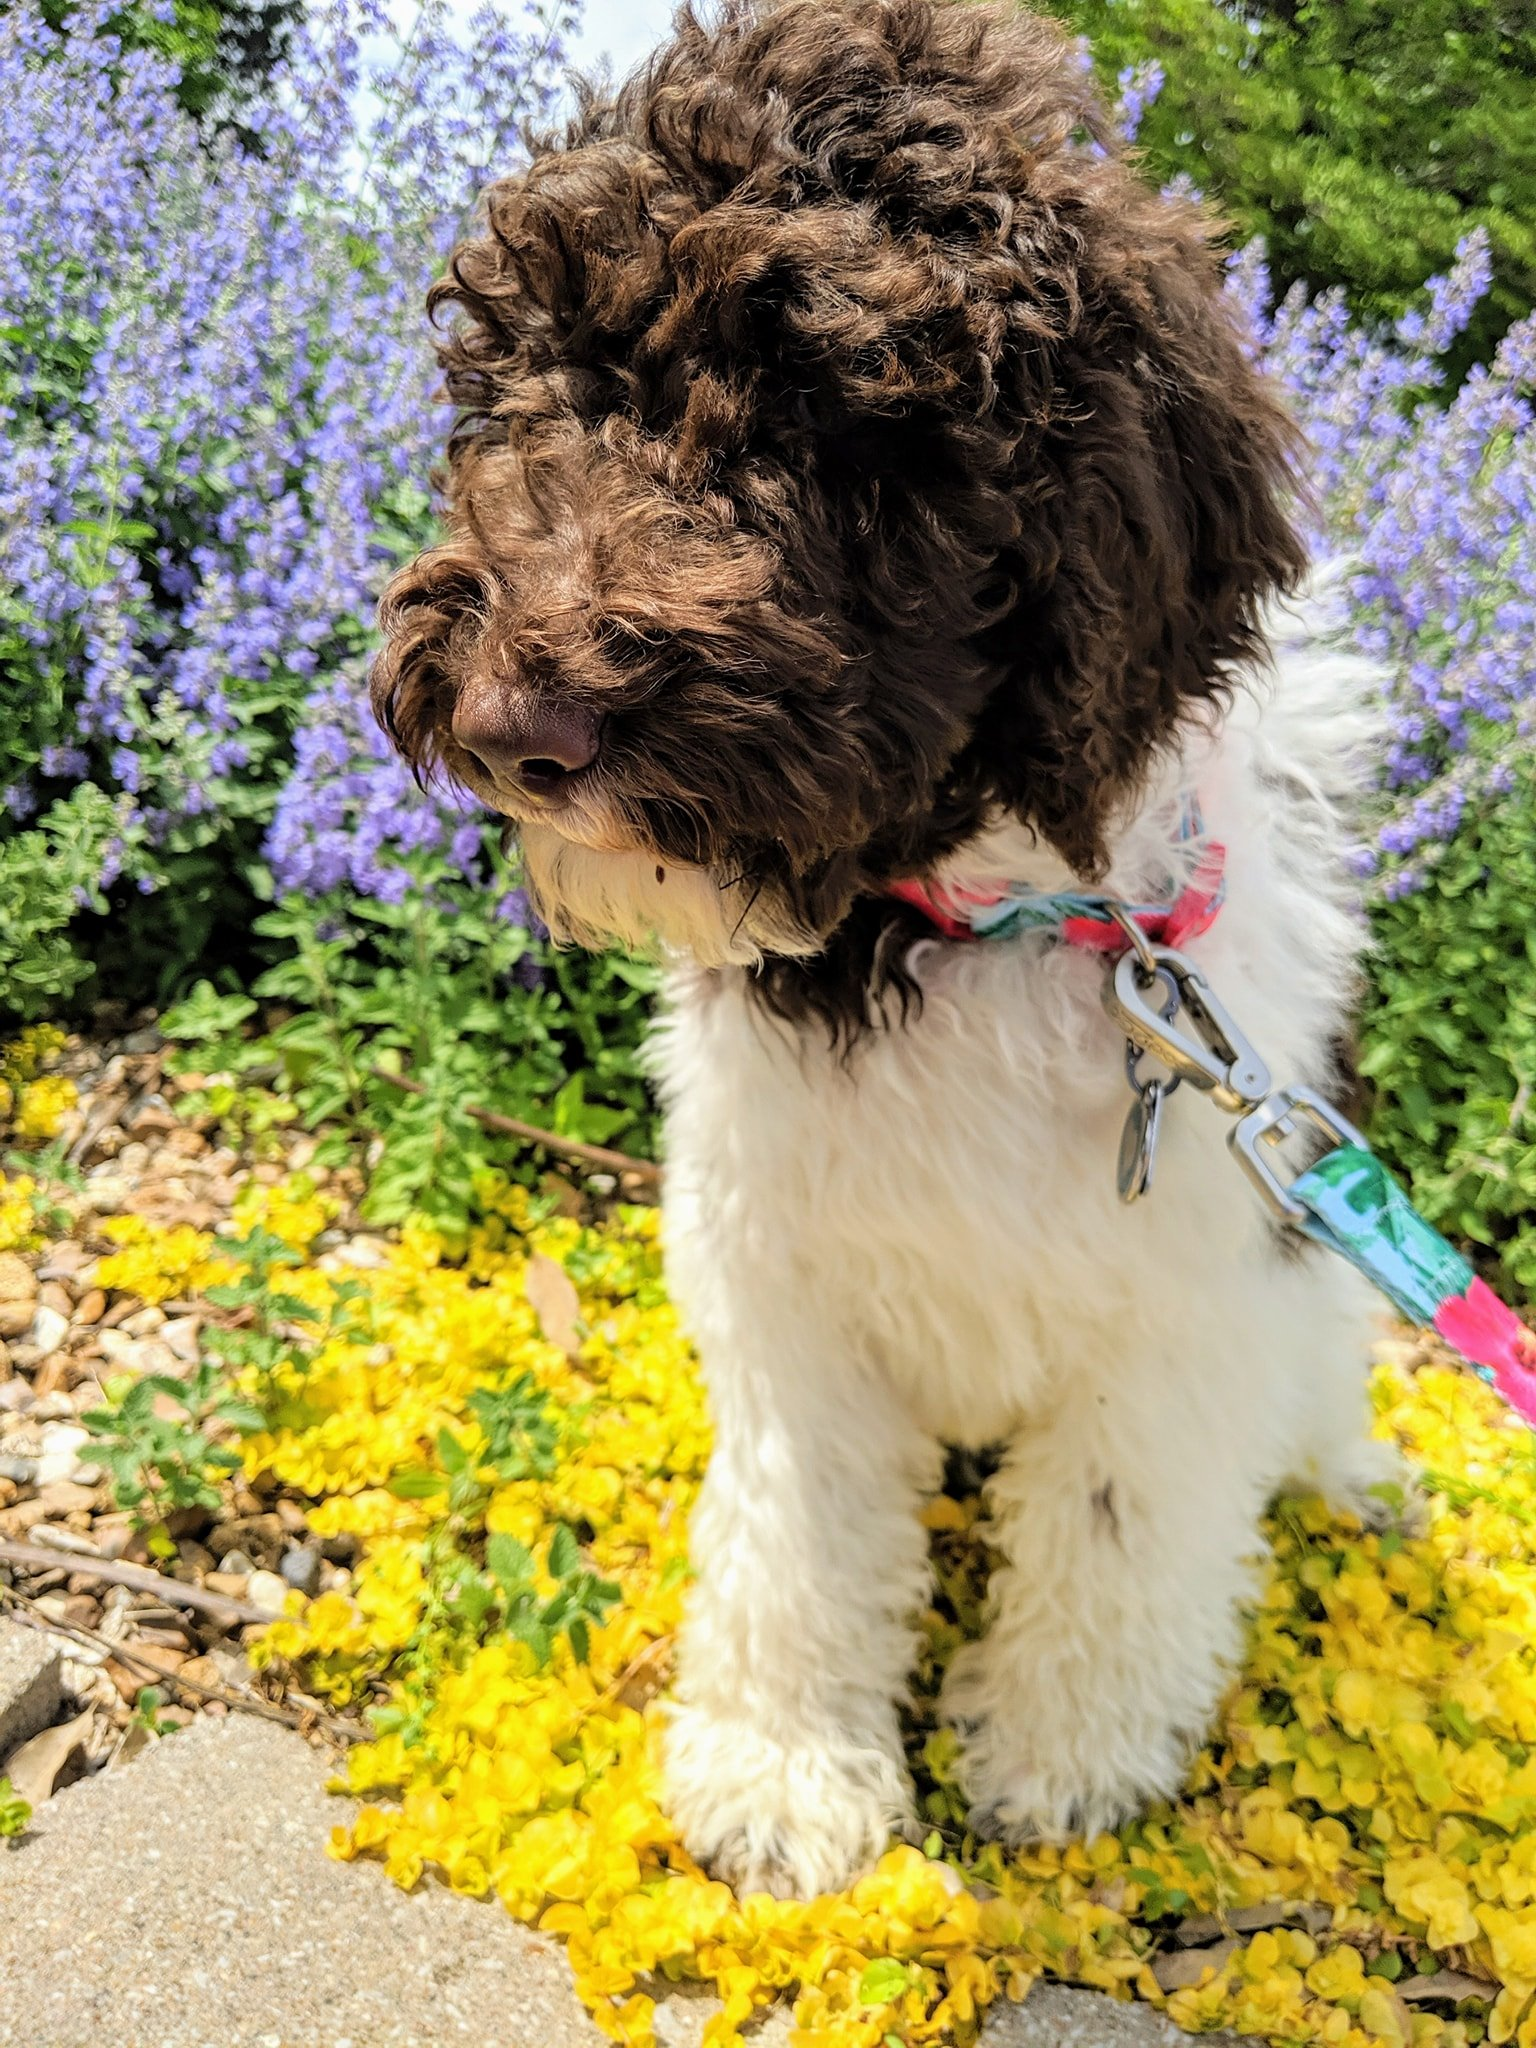 Abigail as a puppy sitting infront of flowers